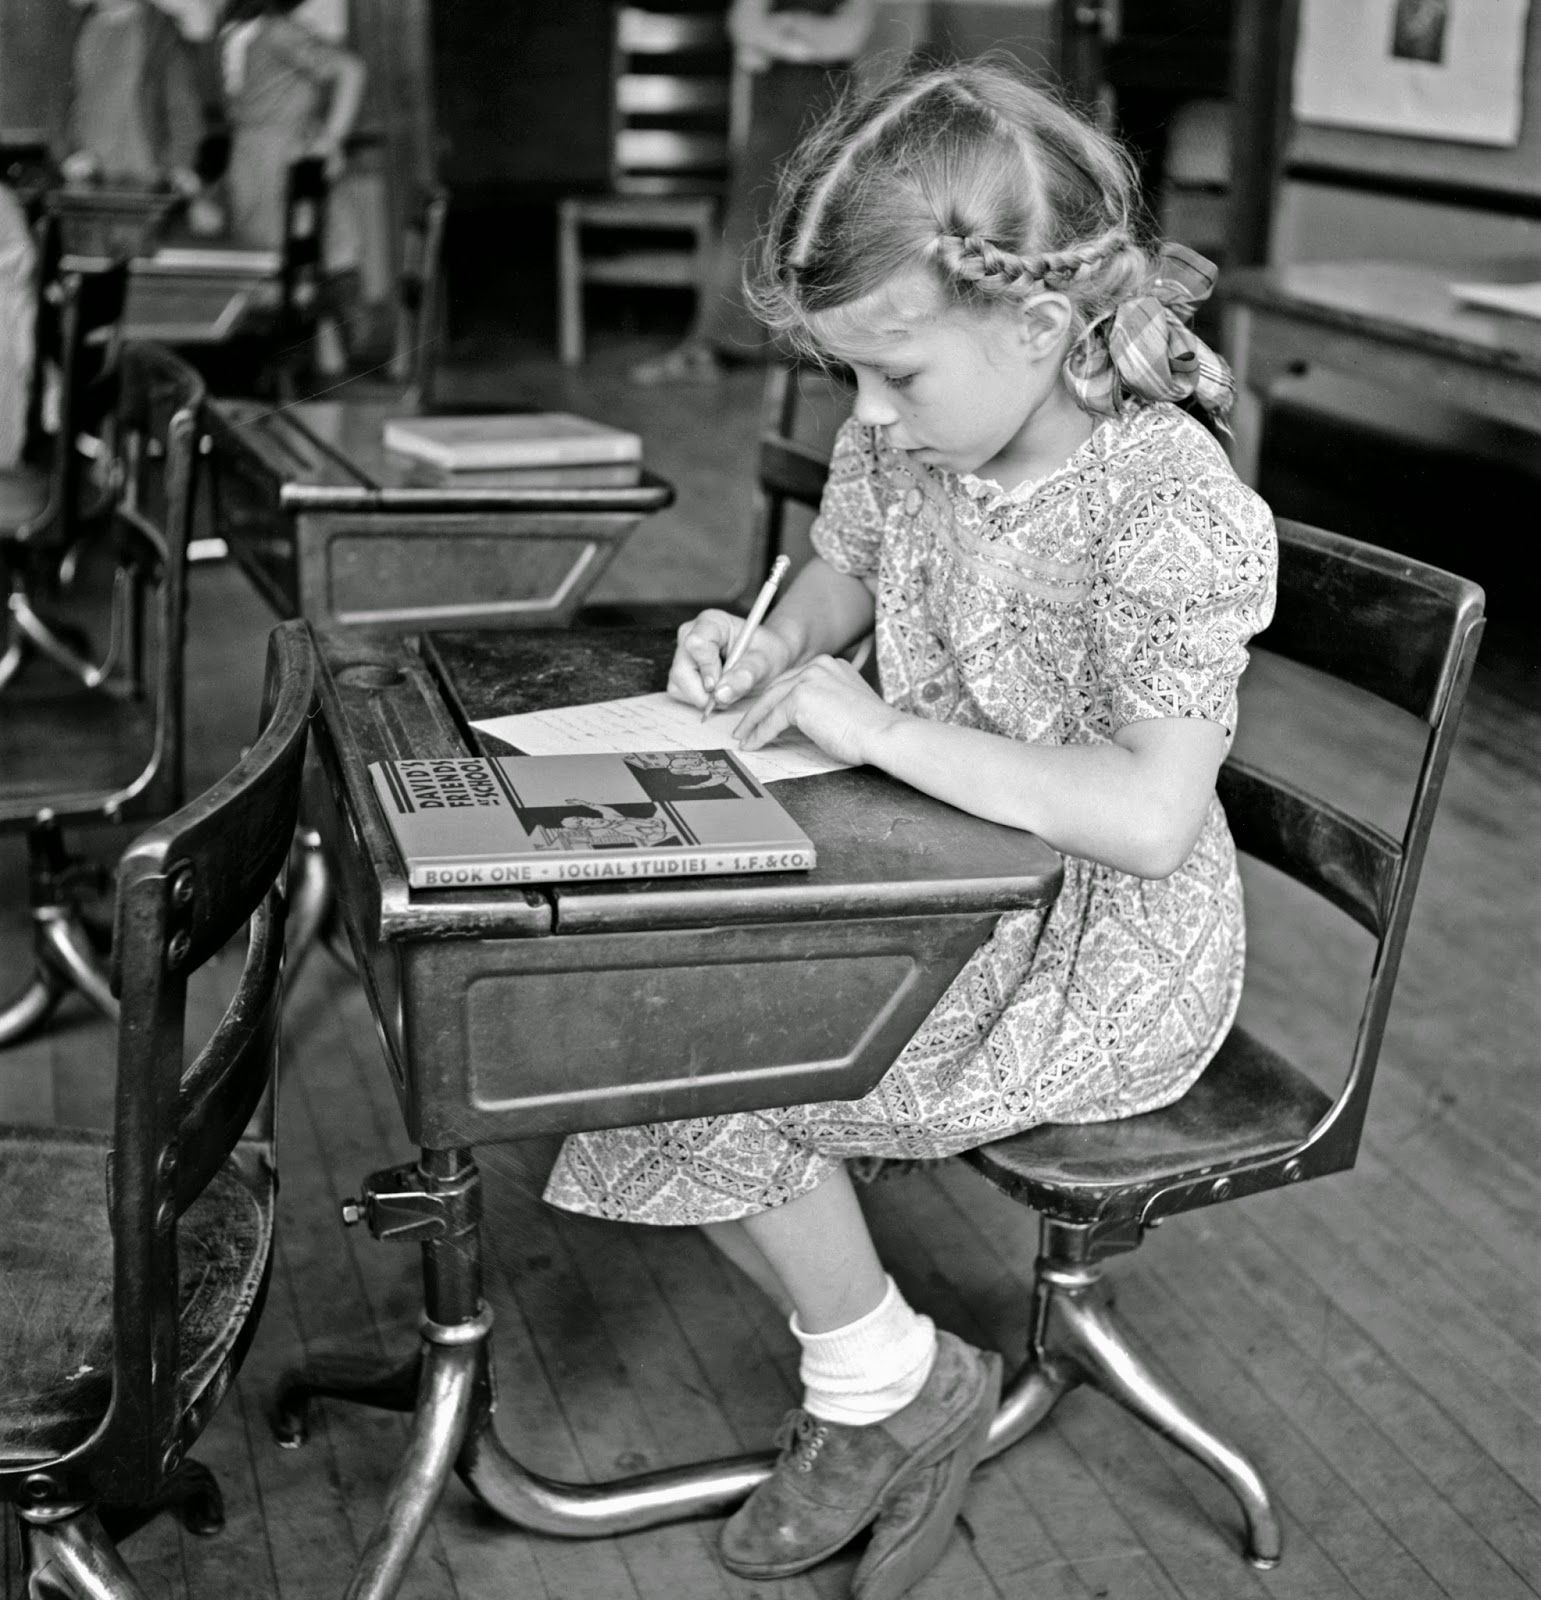 Southington, Connecticut. School girl studying, May 1942. Photo by Charles Fenno Jacobs